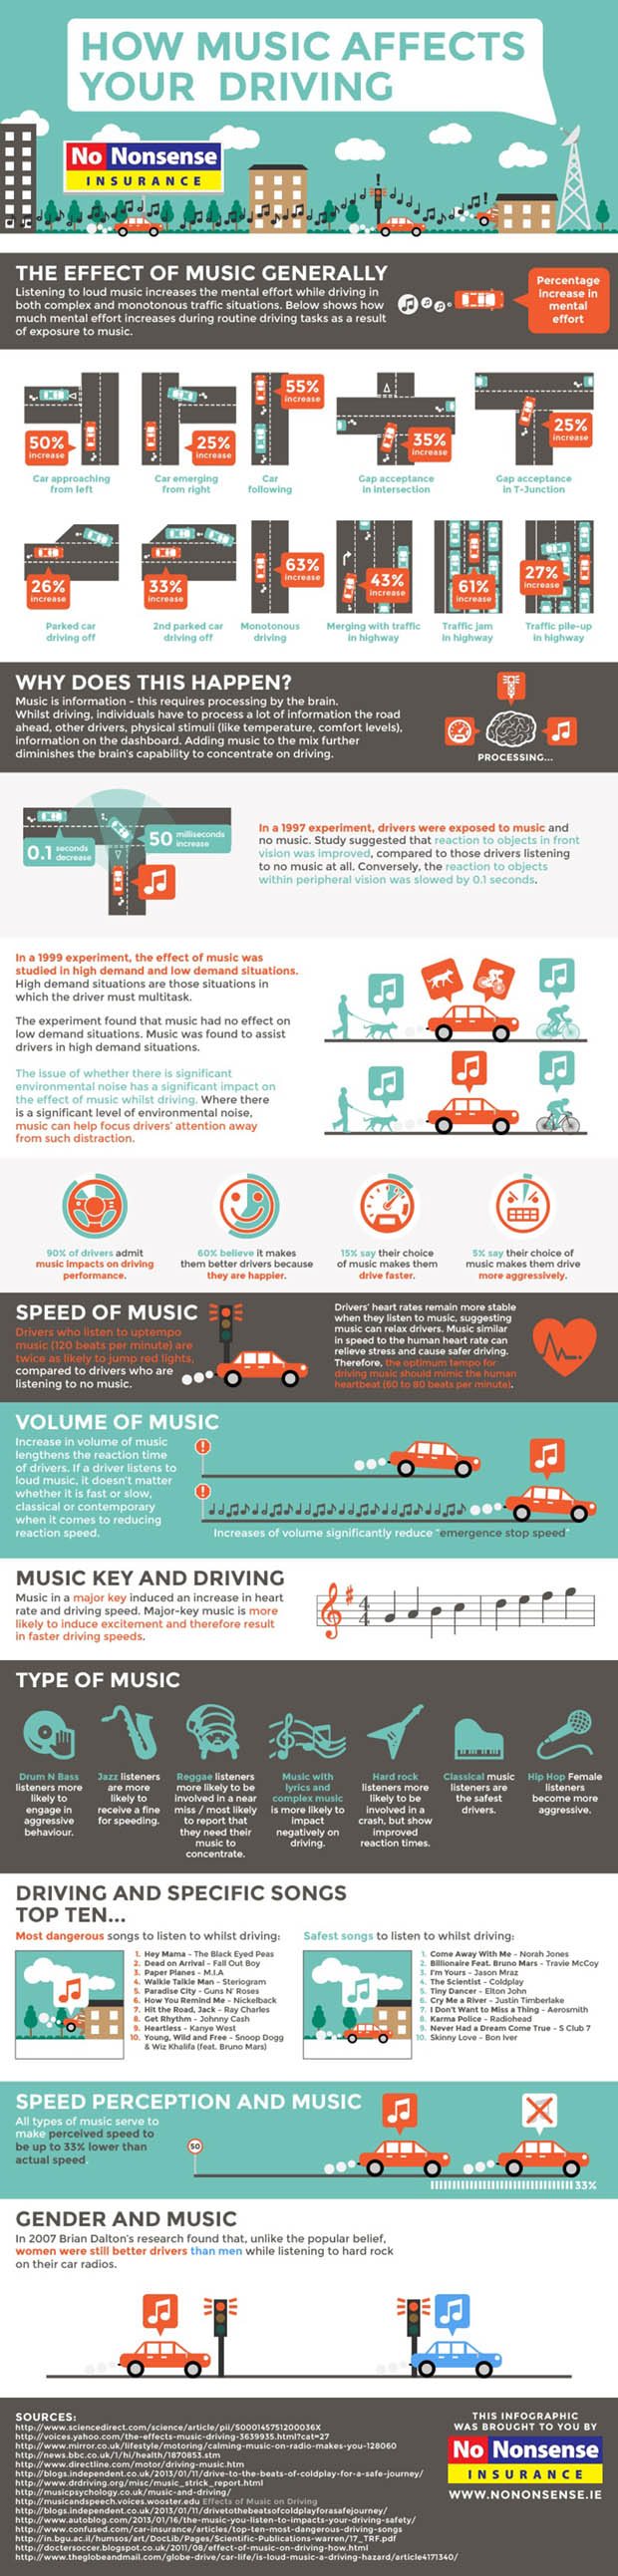 music-affects-driving-infographic